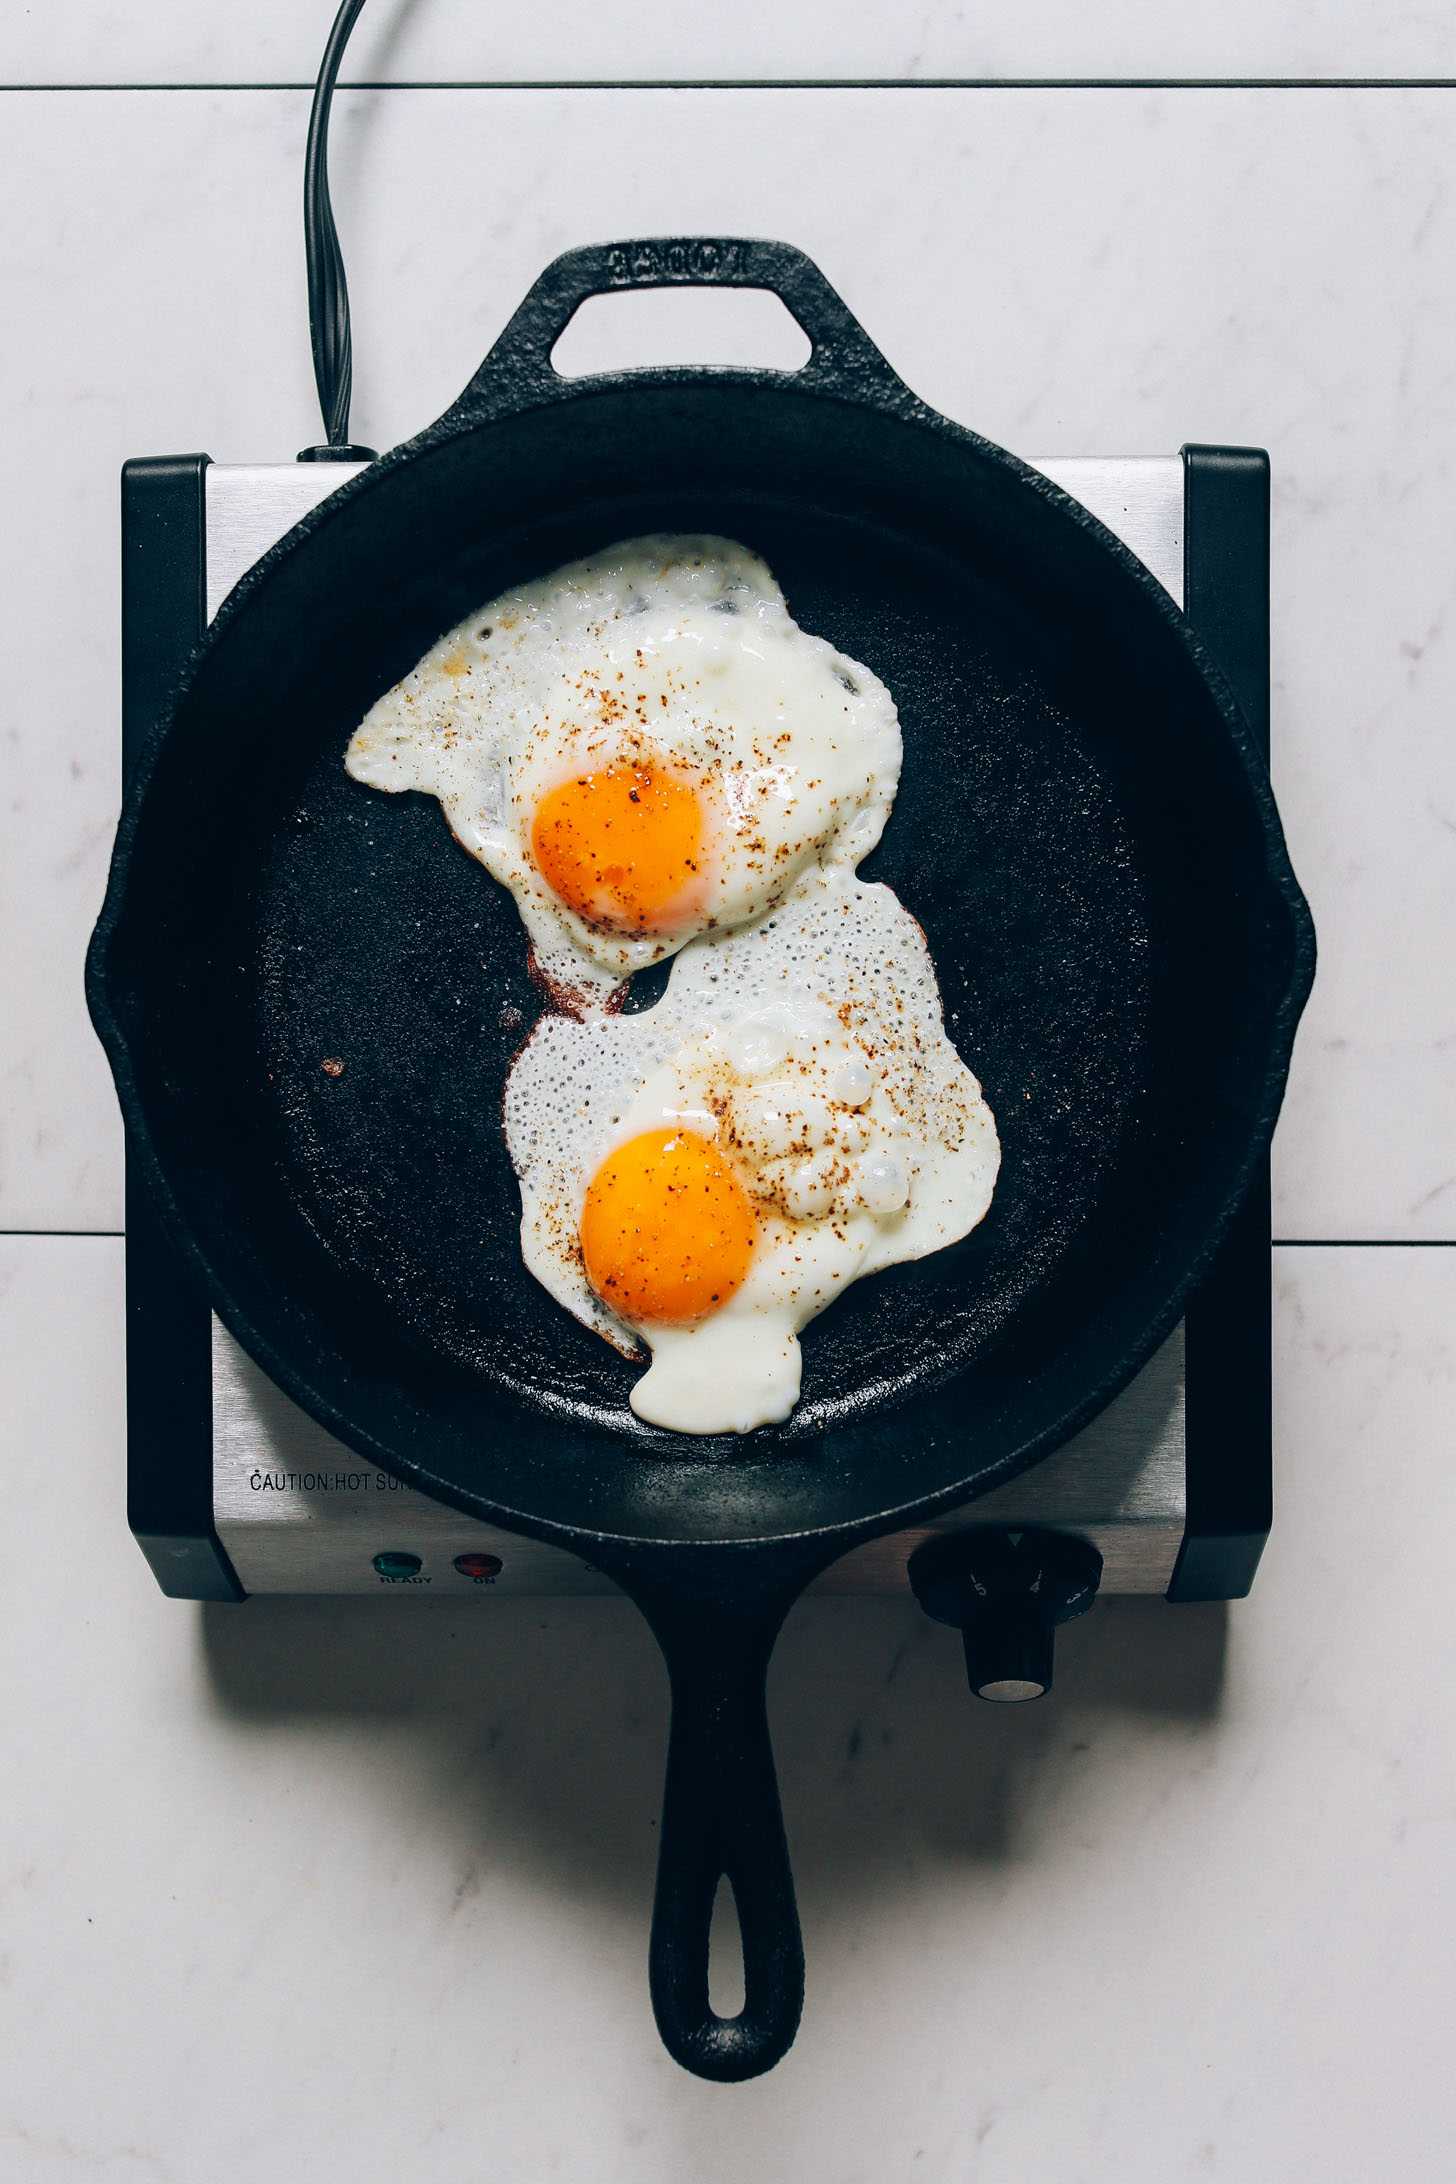 Skillet with two perfectly cooked sunny side up eggs